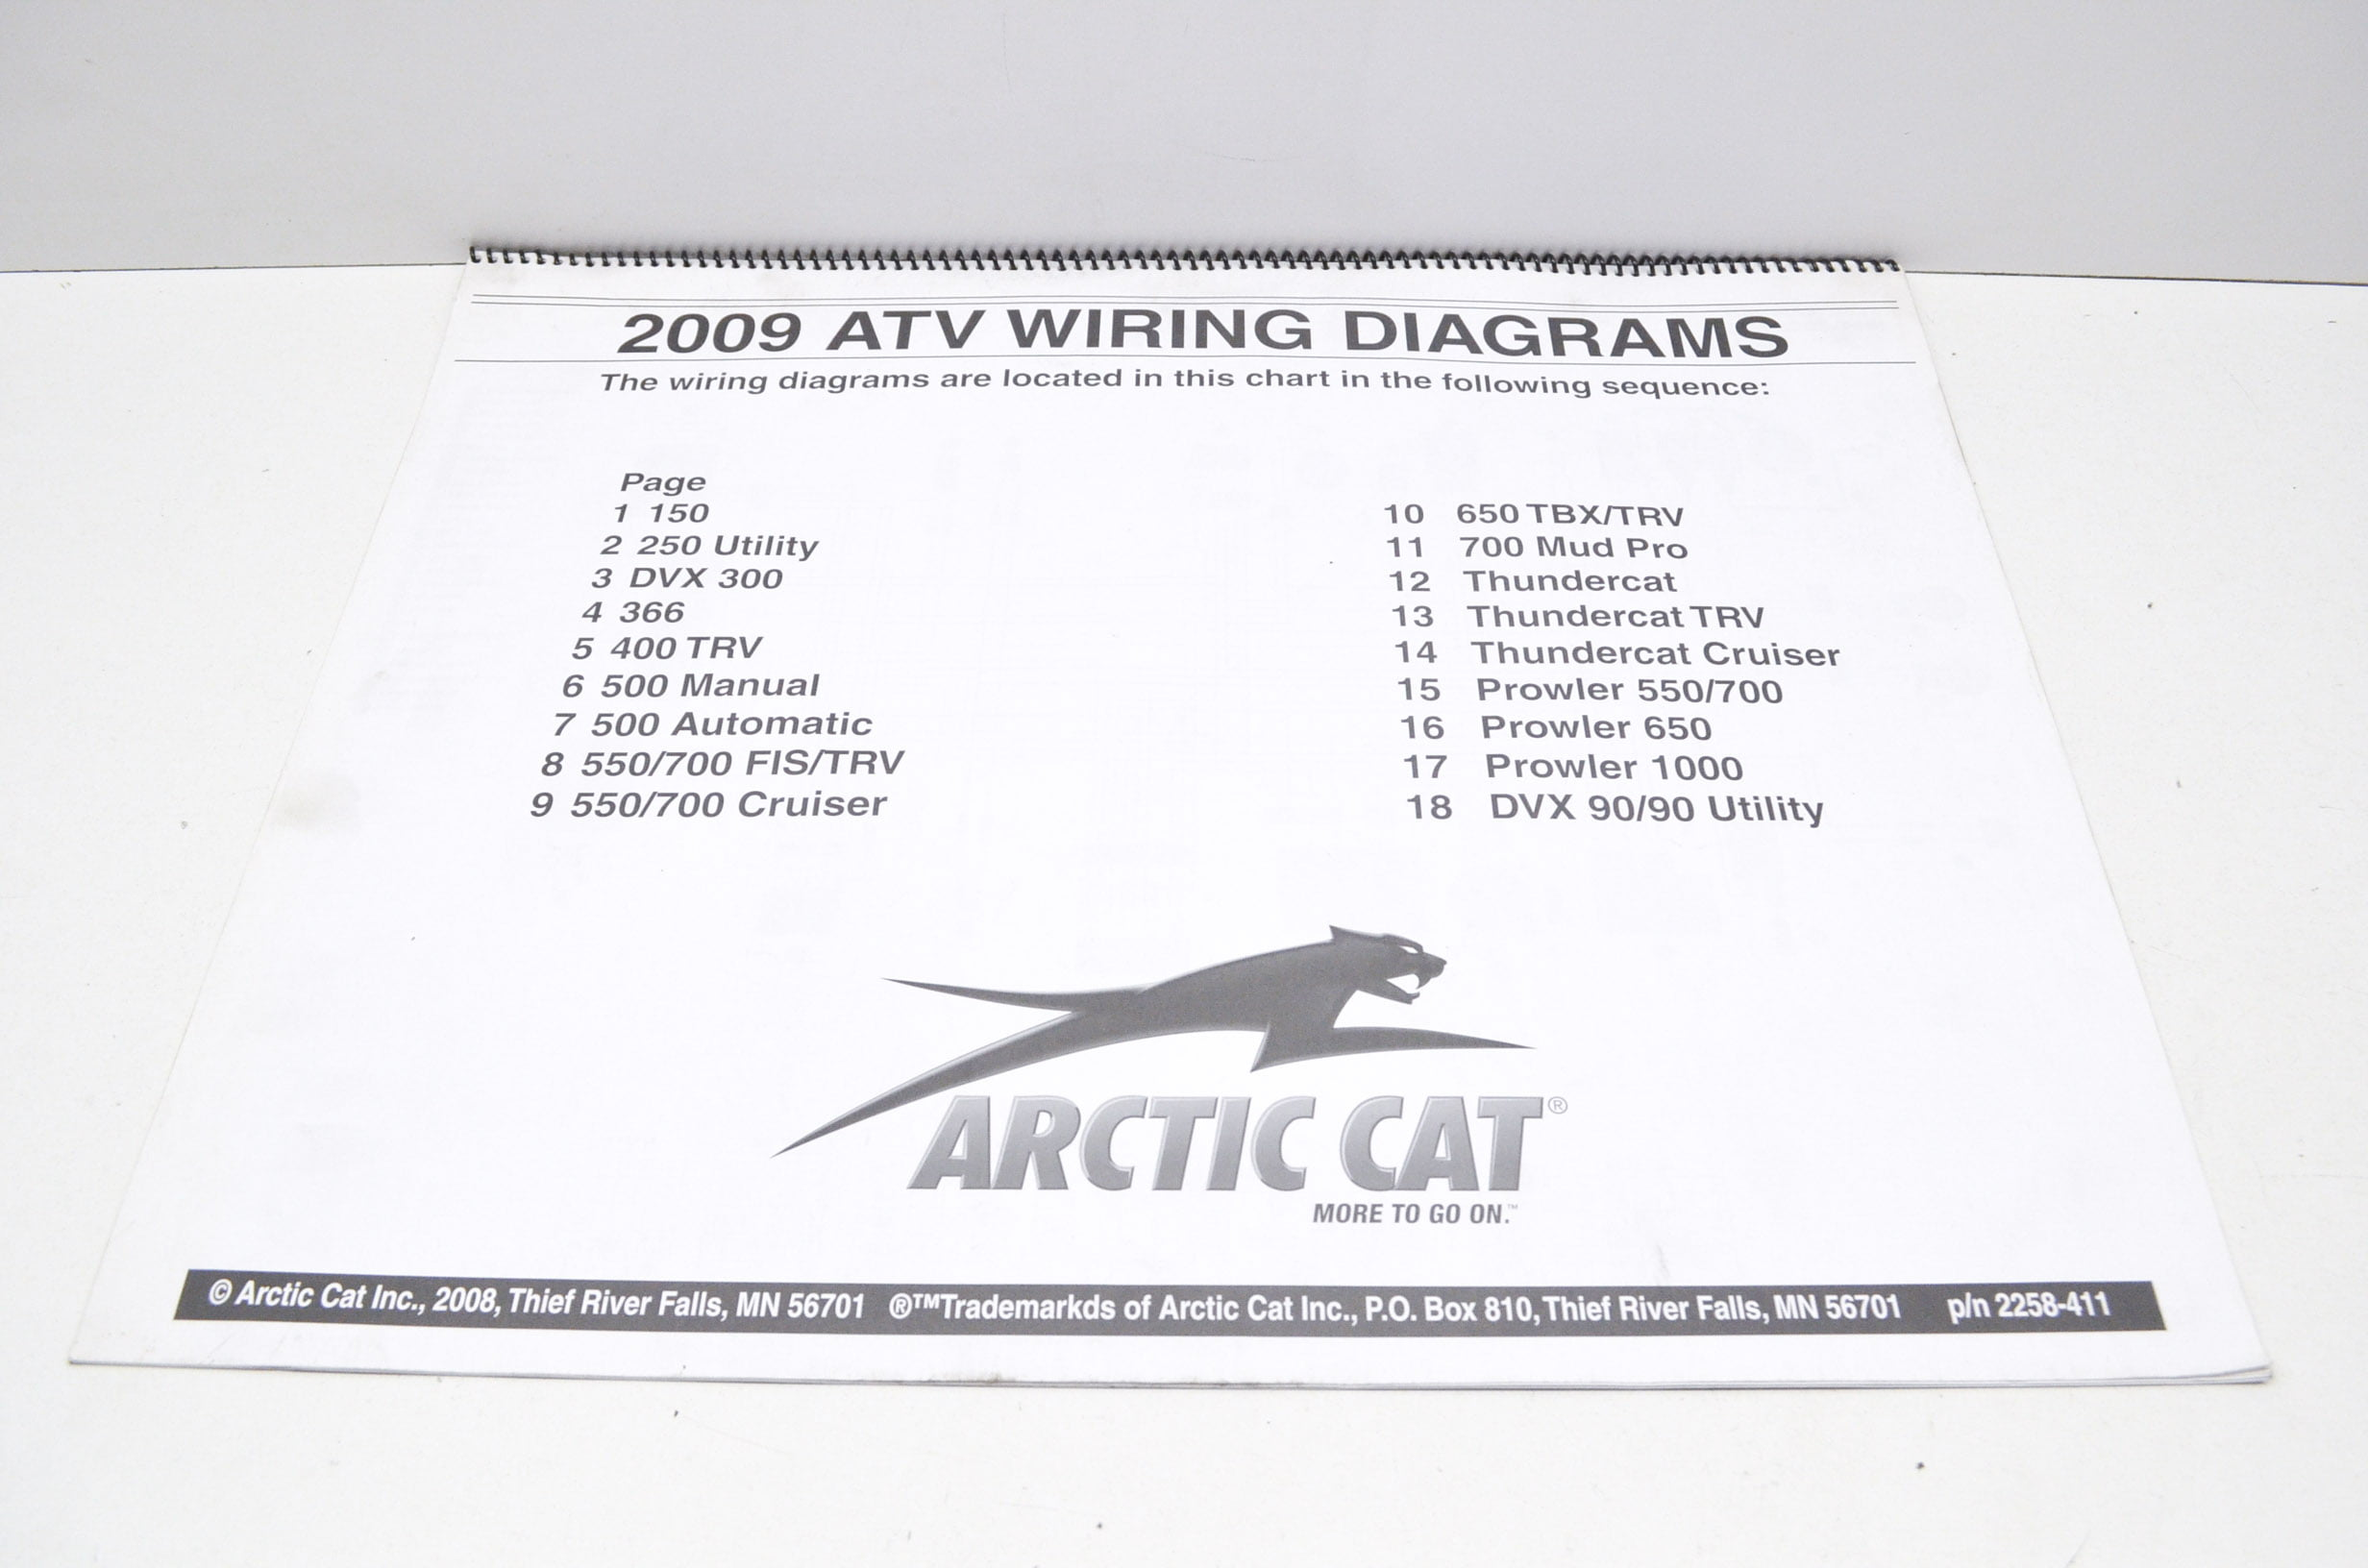 Arctic Cat 2258 411 2009 Atv Wiring Diagrams Qty 1 Walmart Com Arctic Cat  ATV Schematic Arctic Cat 366 Wiring Diagram